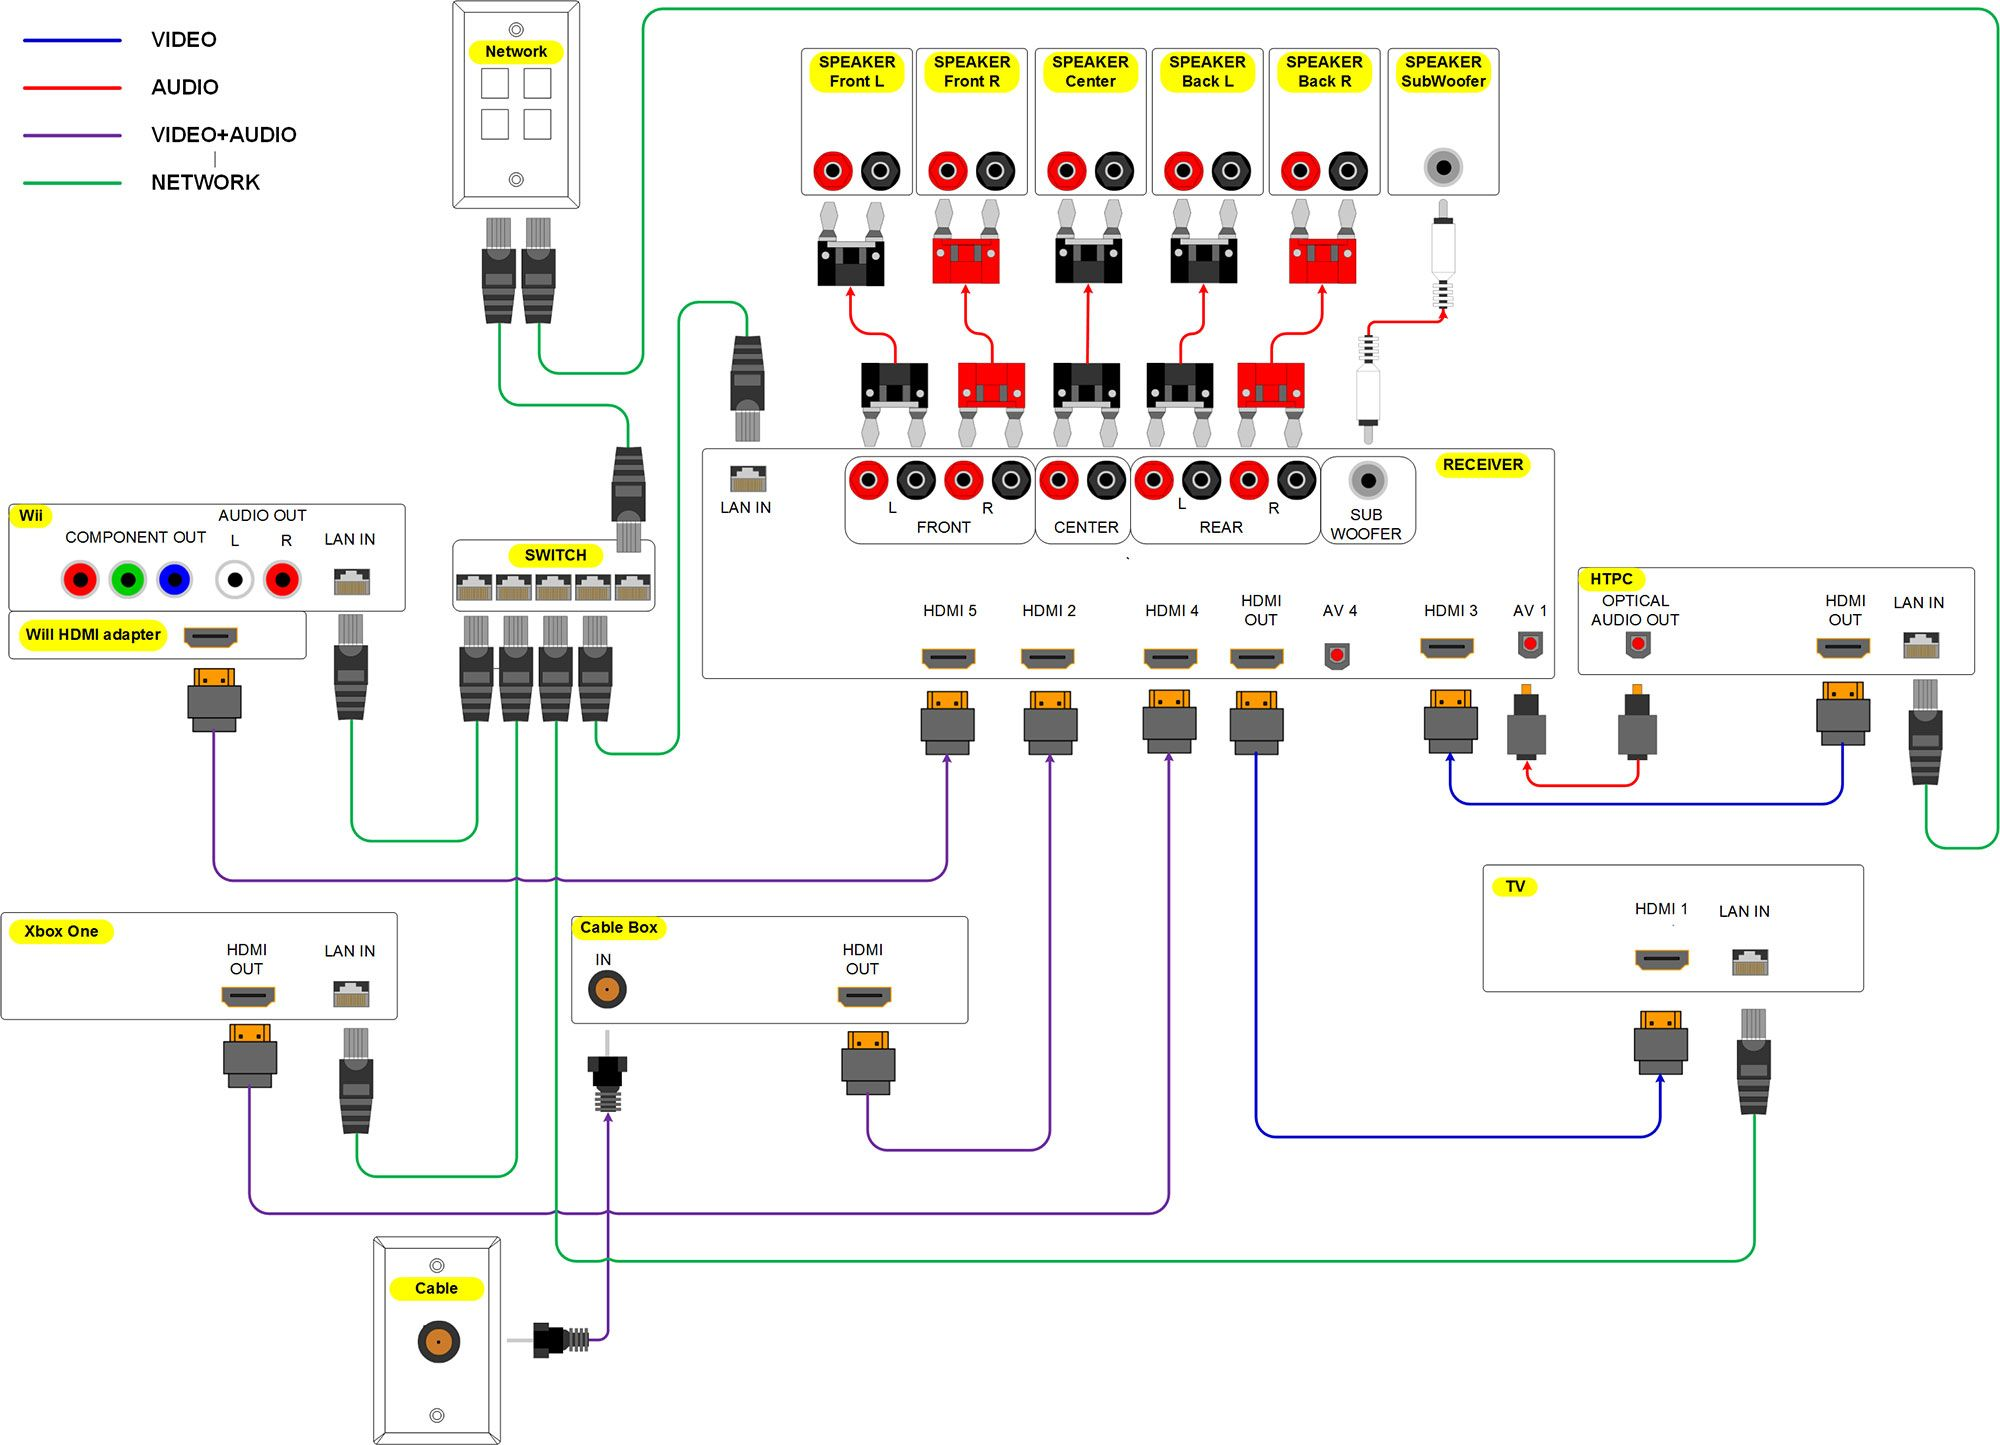 home theater wiring diagram click it to see the big 2000 pixel wide rh pinterest com home audio wiring cost home audio wiring